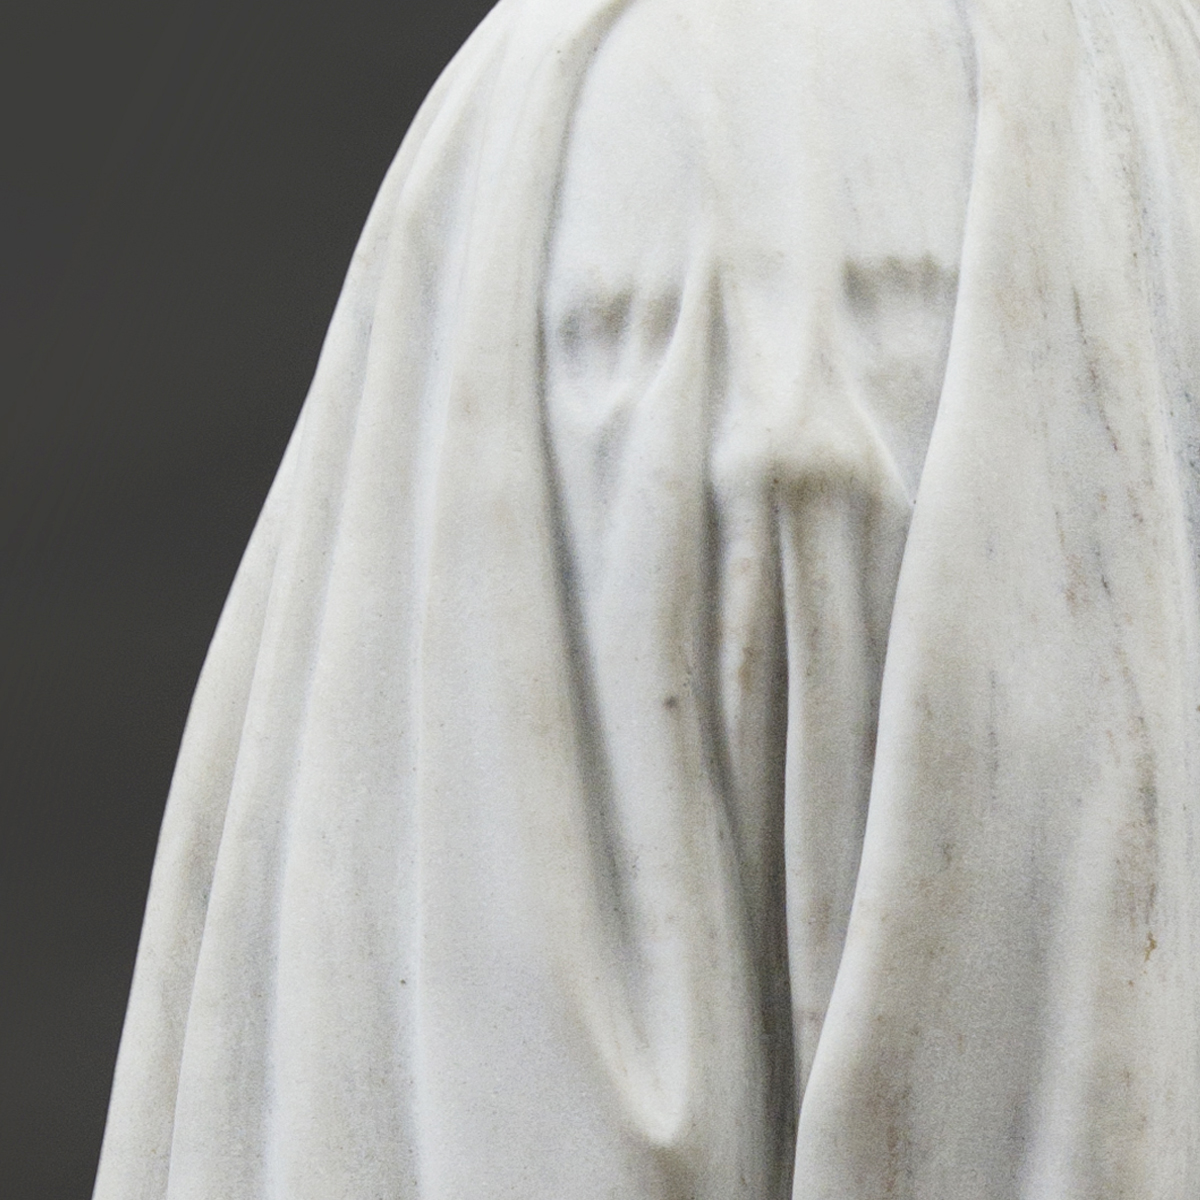 Little Ghost, marble, 33 x 18 x 16